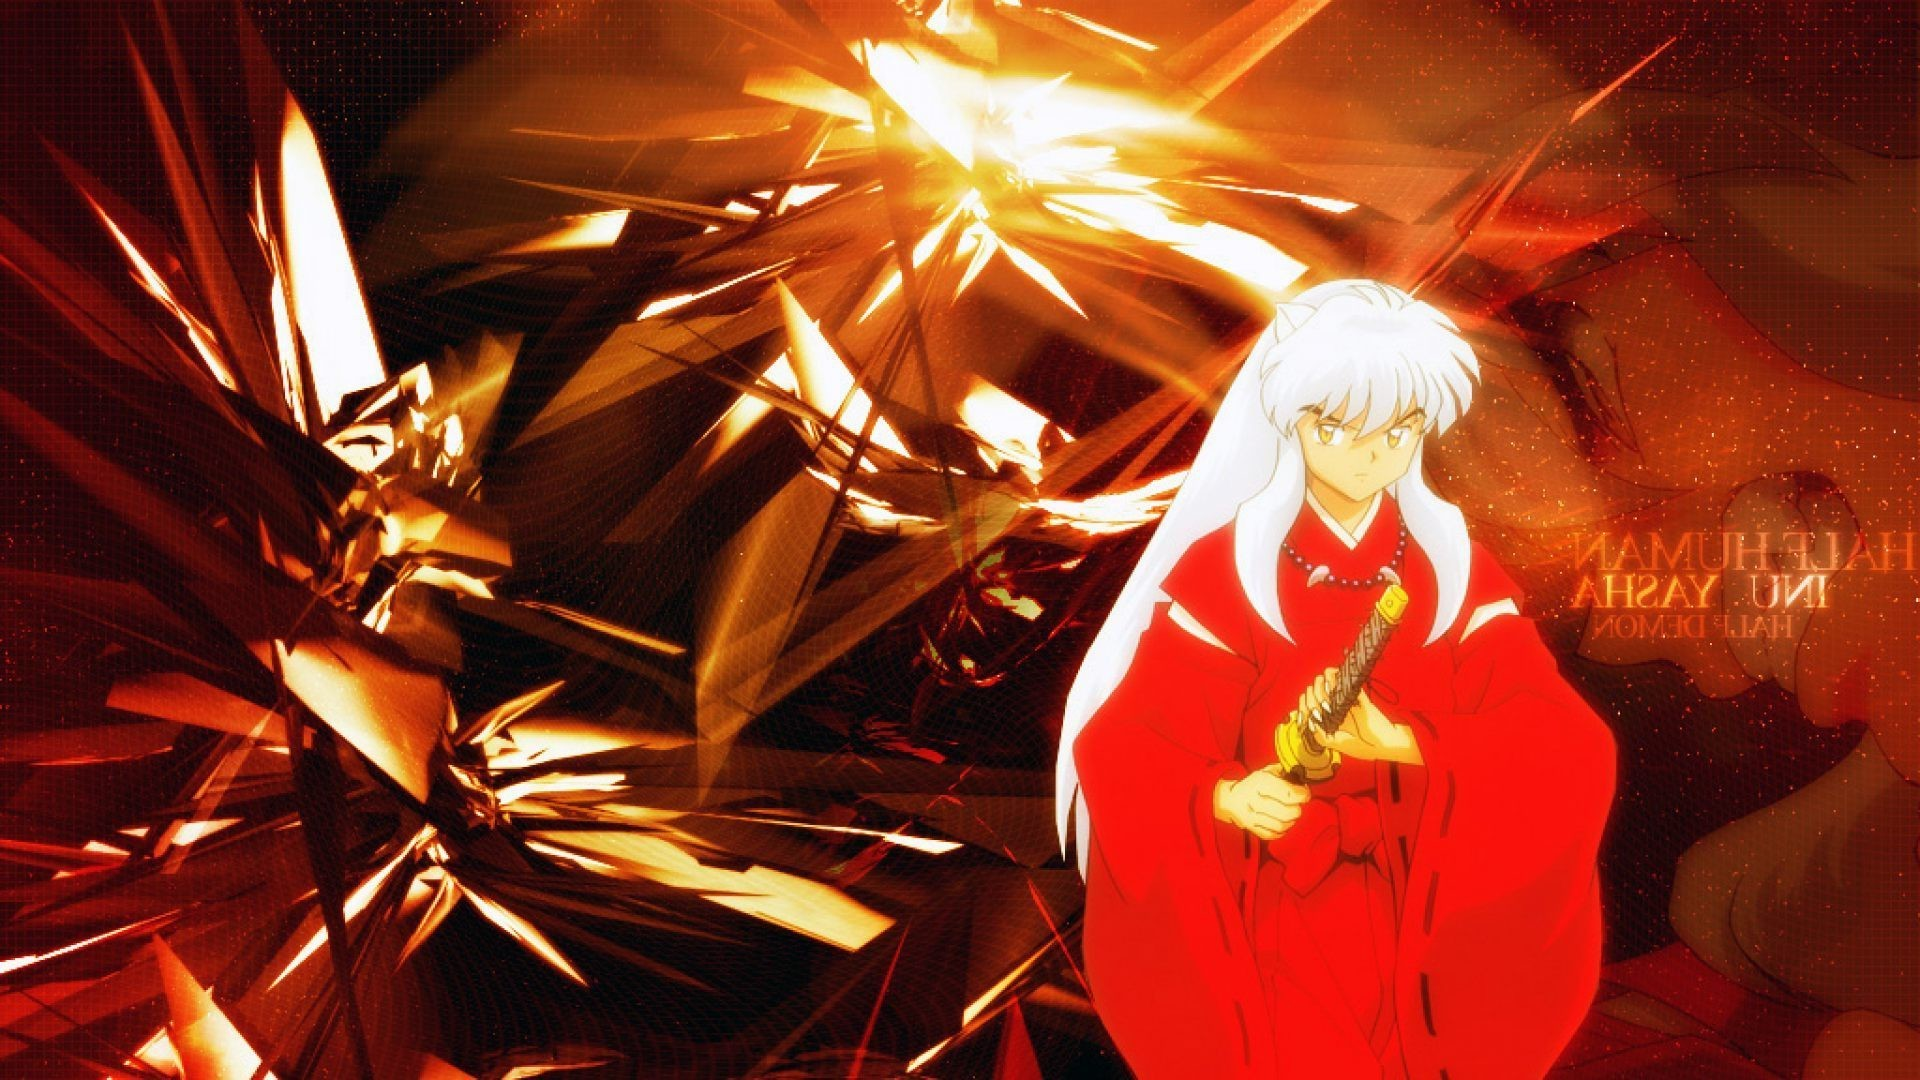 1920x1080 Inuyasha Free HD Widescreen Wallpapers